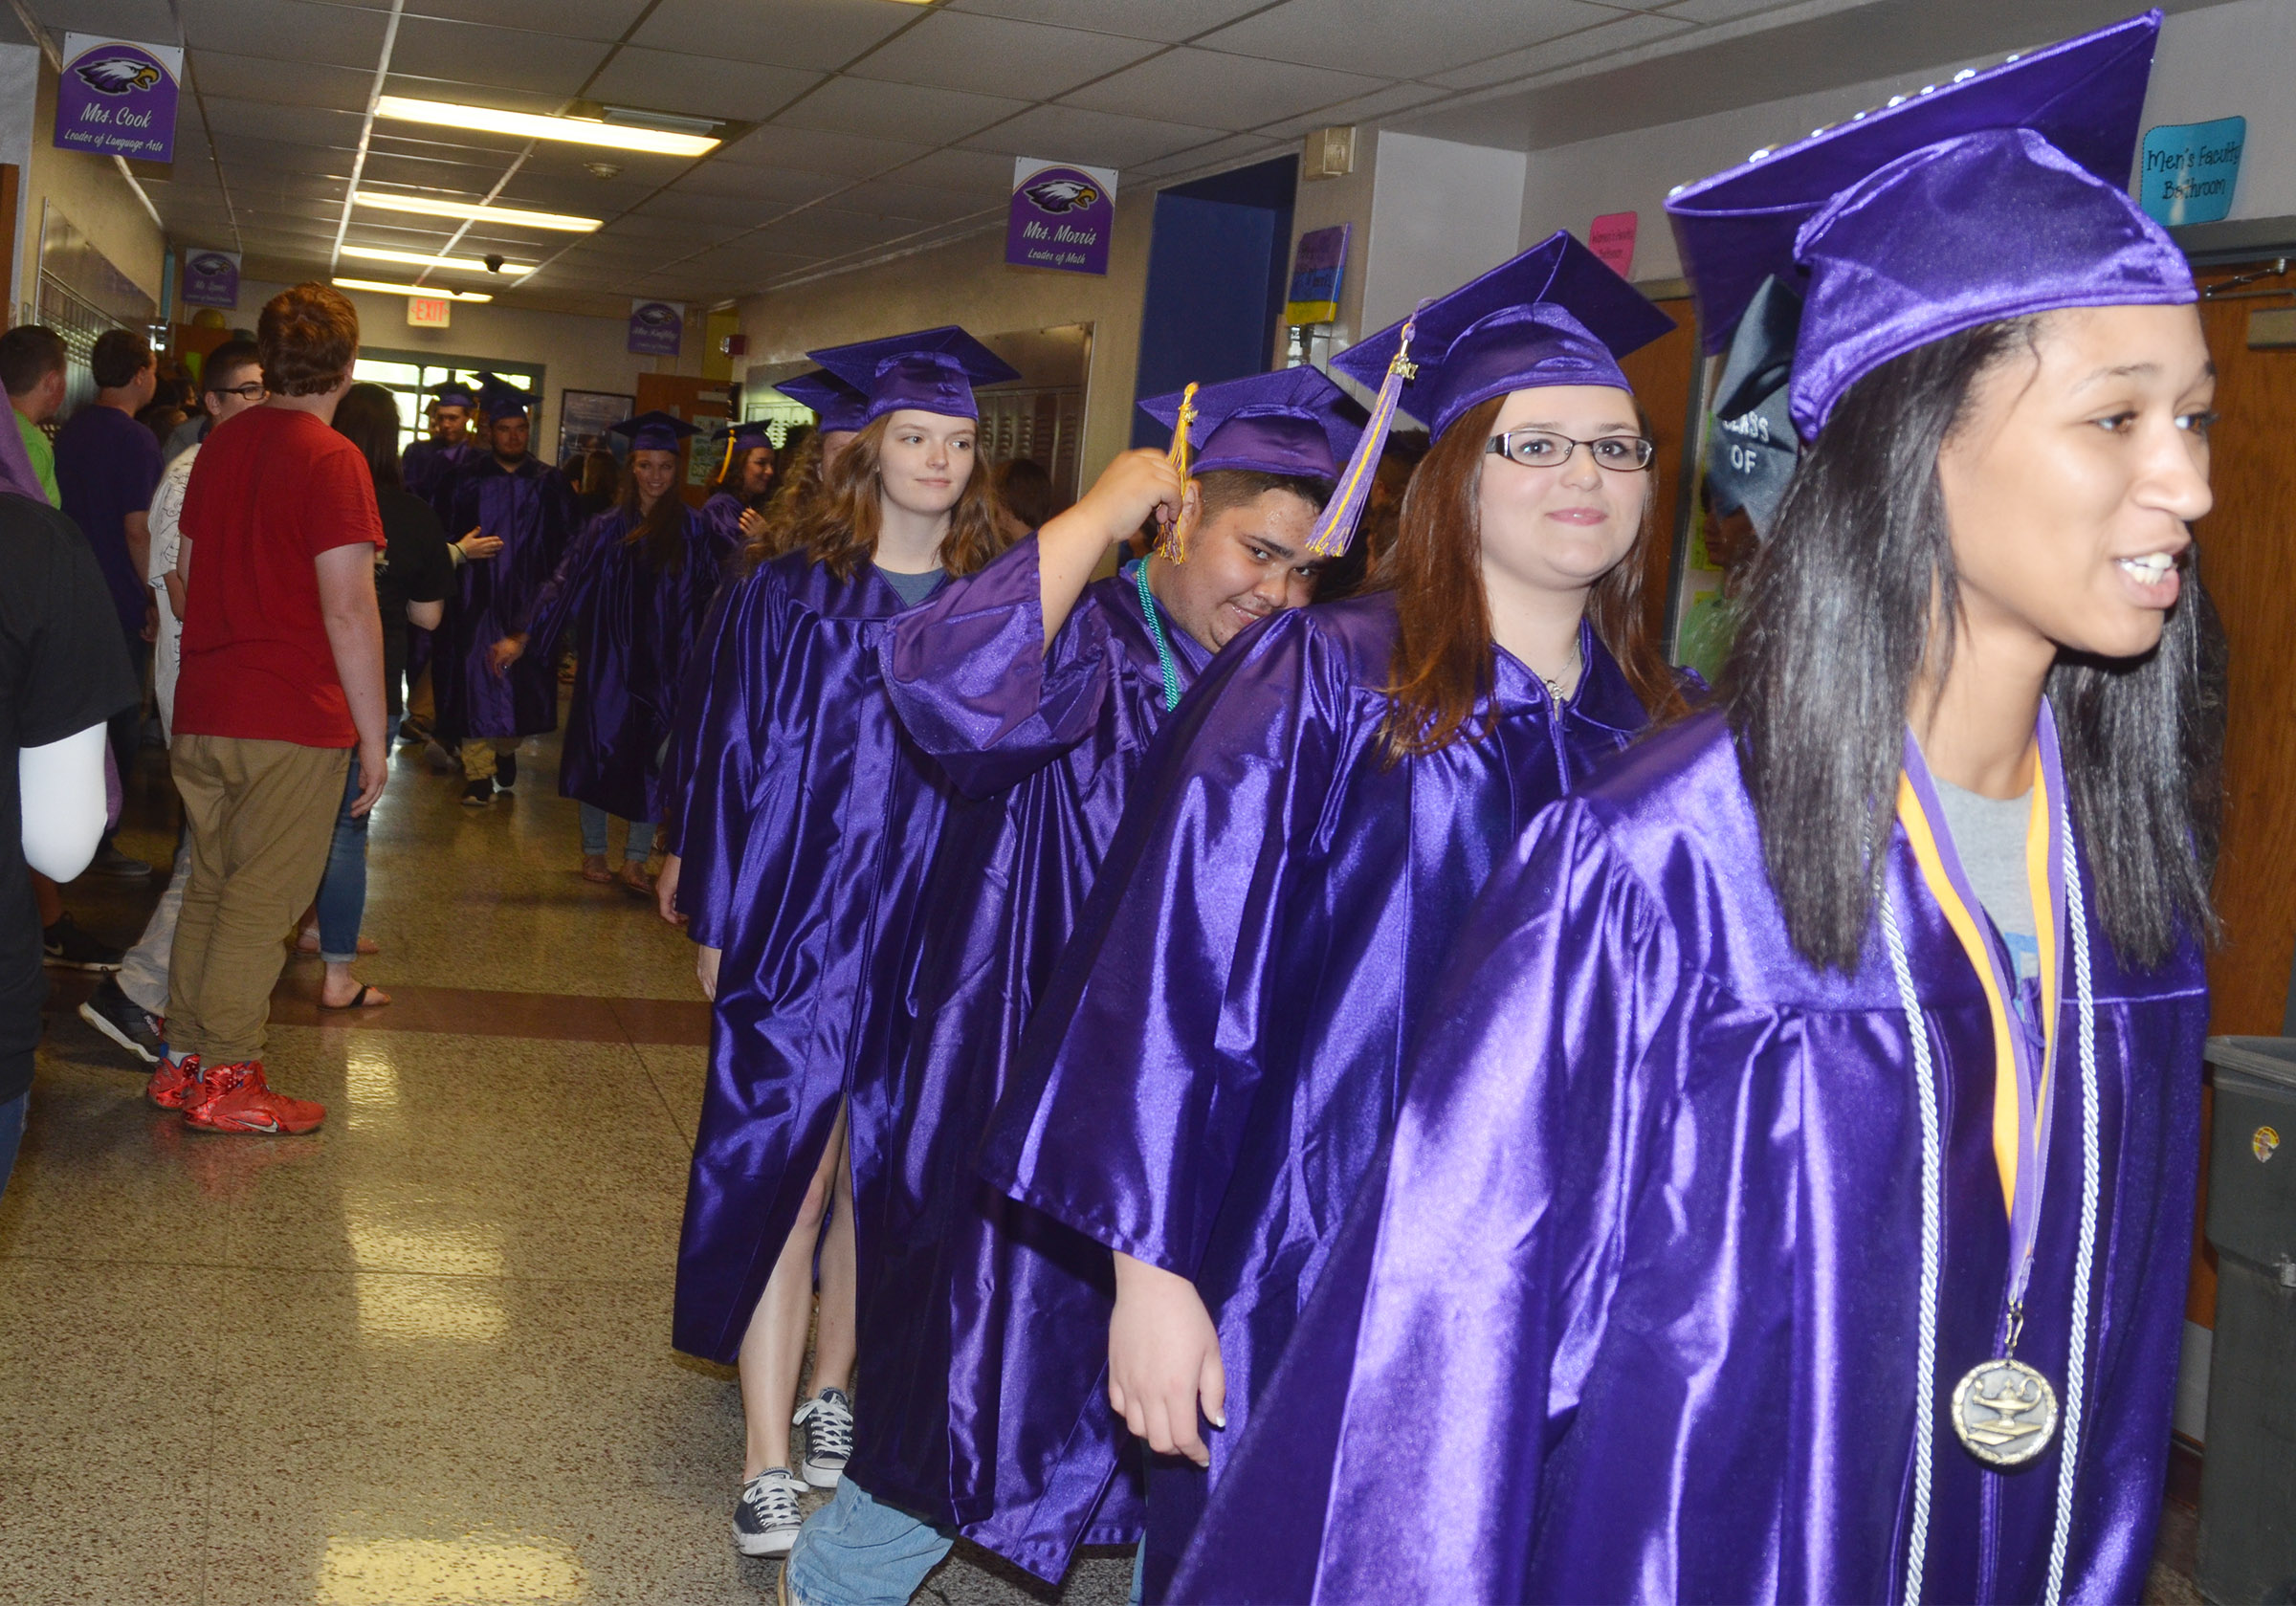 CHS seniors, from left, Blair Lamb, Robert Tungate, Vera Brown and Alexis Shears walk down the hallways at CMS.